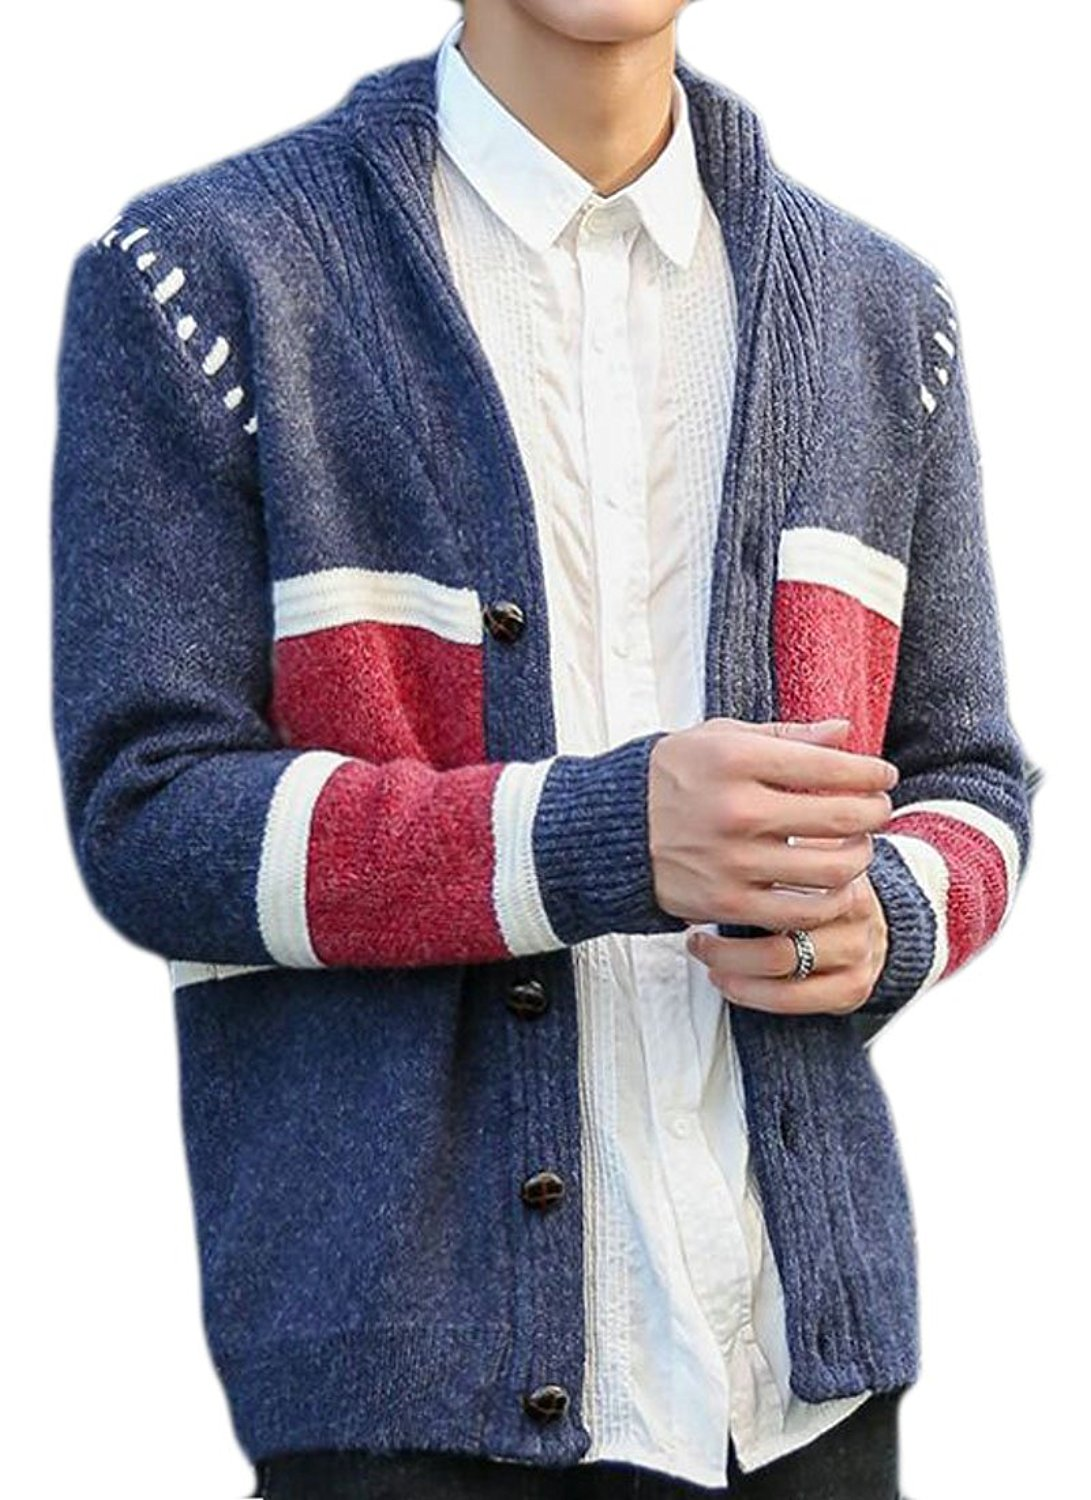 CBTLVSN Mens Casual Long Sleeve V-Neck Front Button Knitted Sweater Cardigan